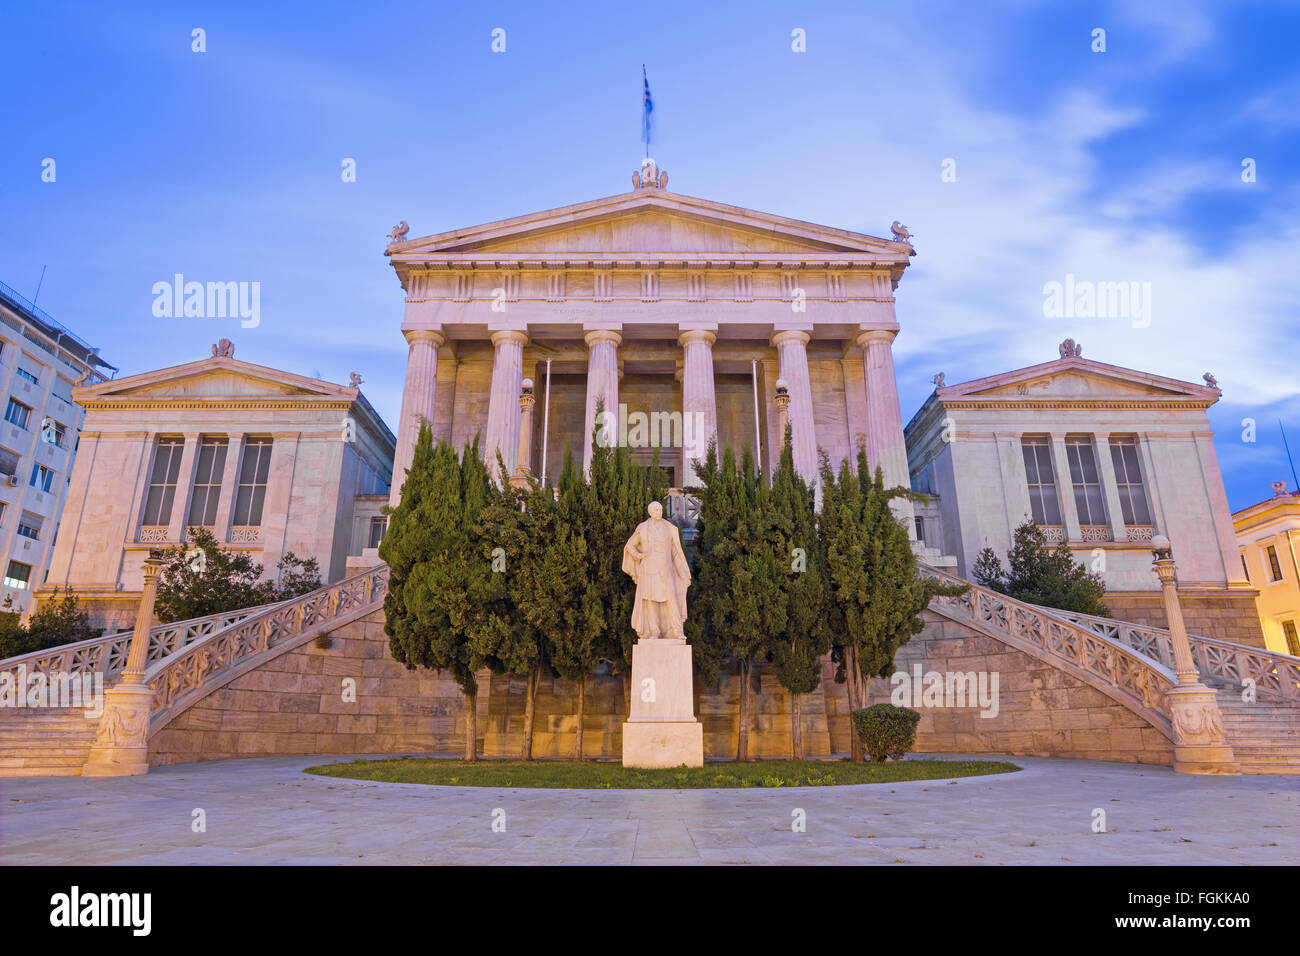 Athens - The National Library building at dusk designed by the Danish architect Theophil Freiherr von Hansen (19. - Stock Image